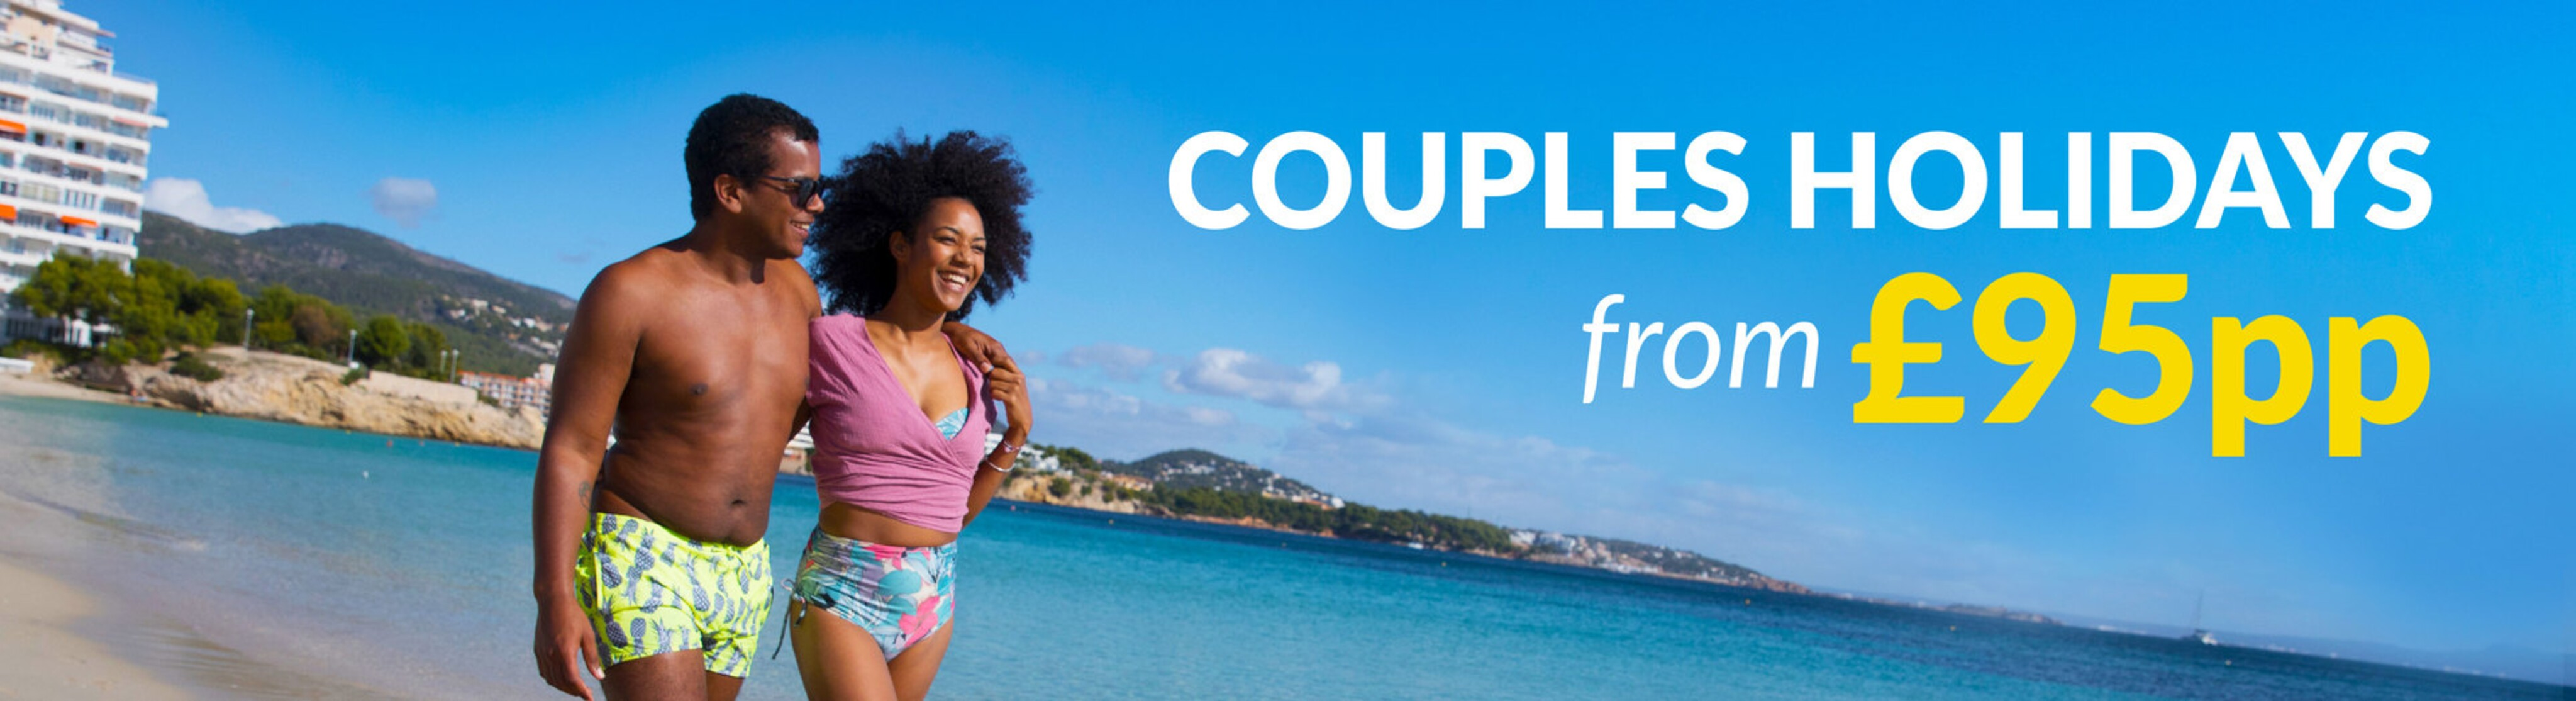 Couples Holidays 2018 Romantic Breaks For Couples On